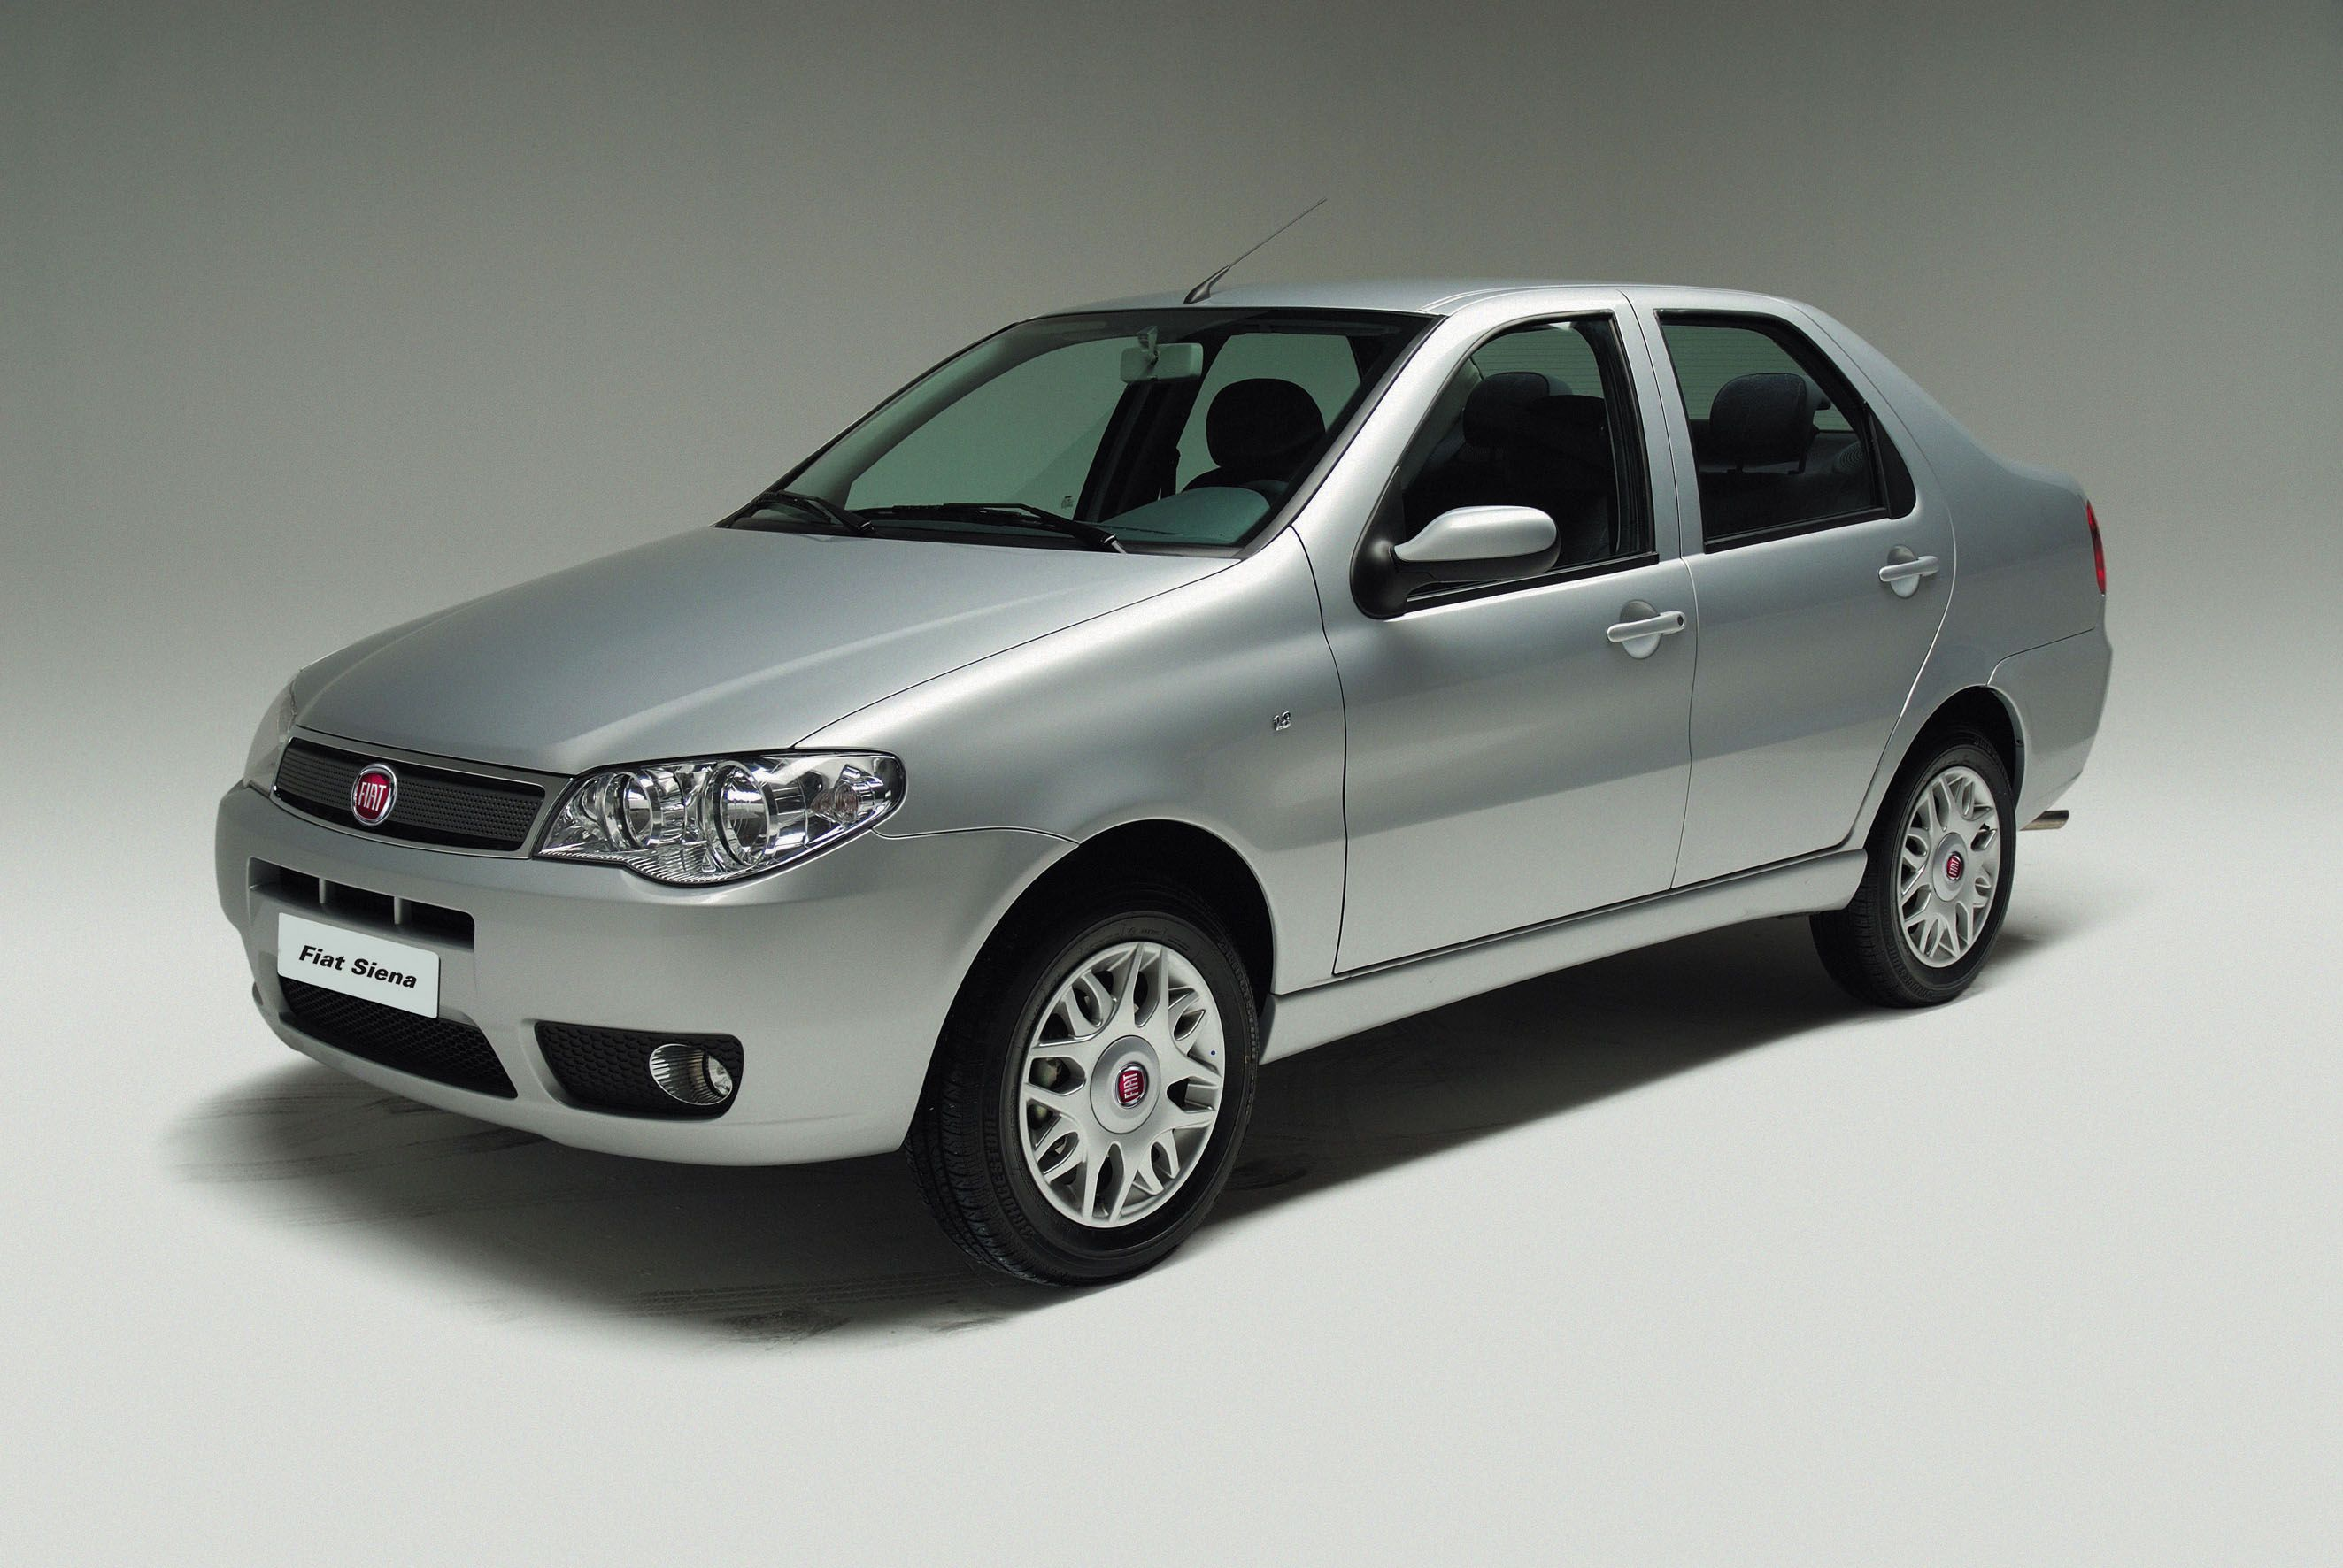 wallpapers images photos and fiat wall siena wallpaper other hd